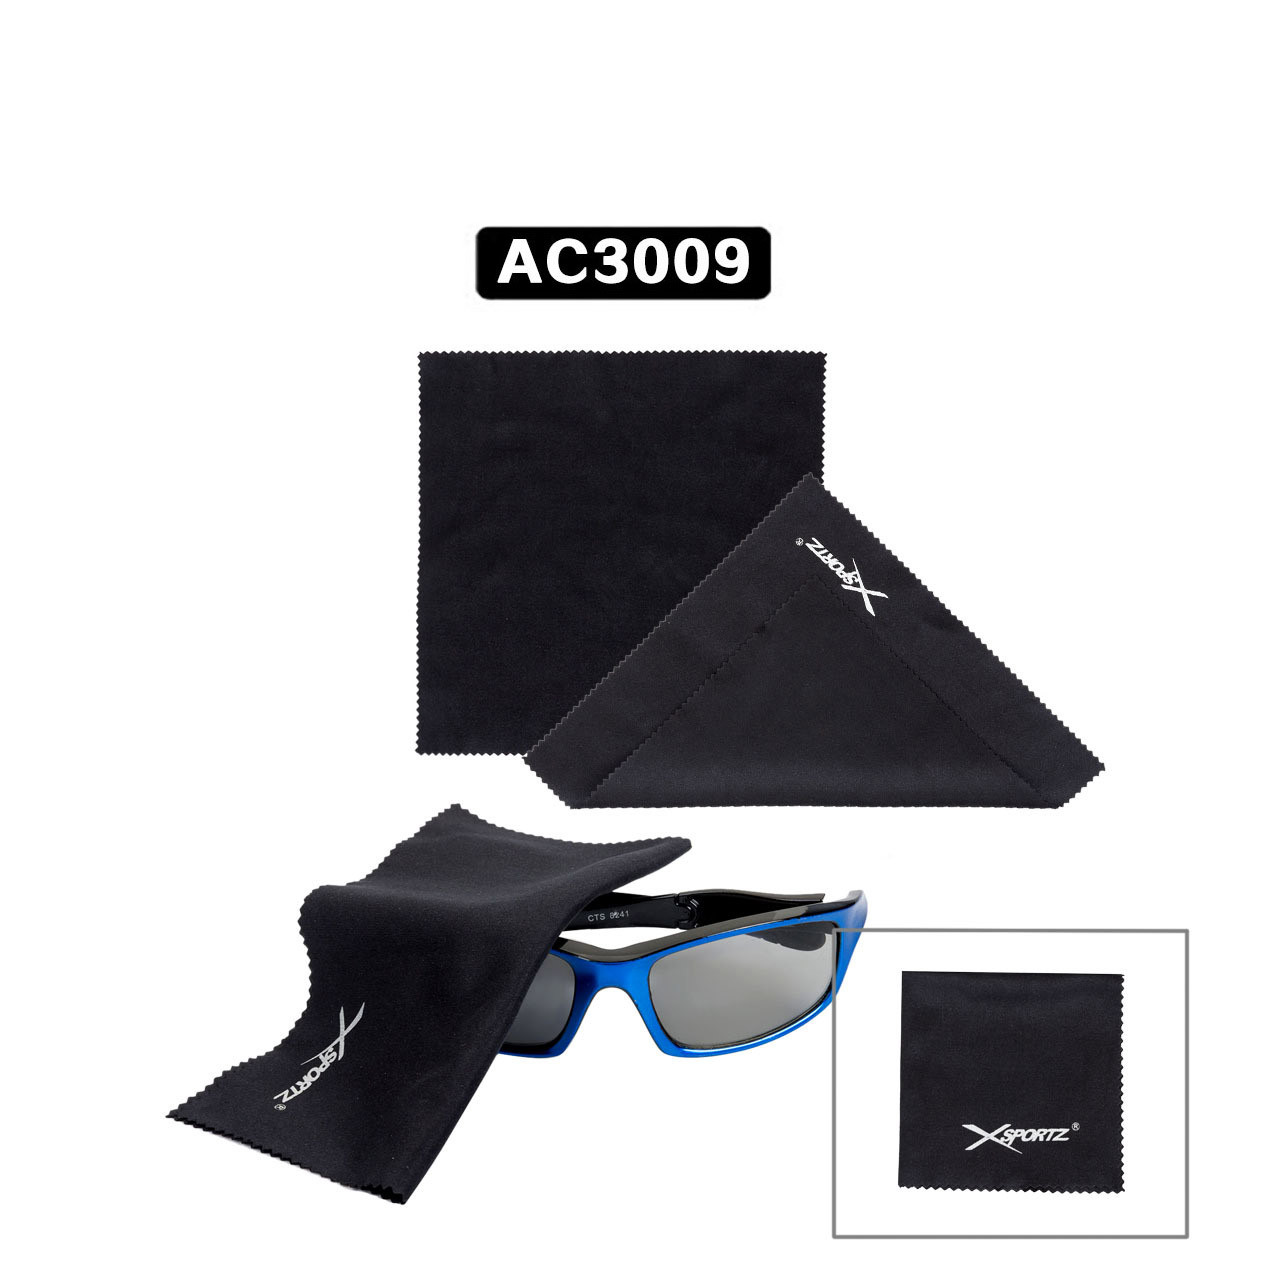 Cleaning Cloths | Xsportz AC3009